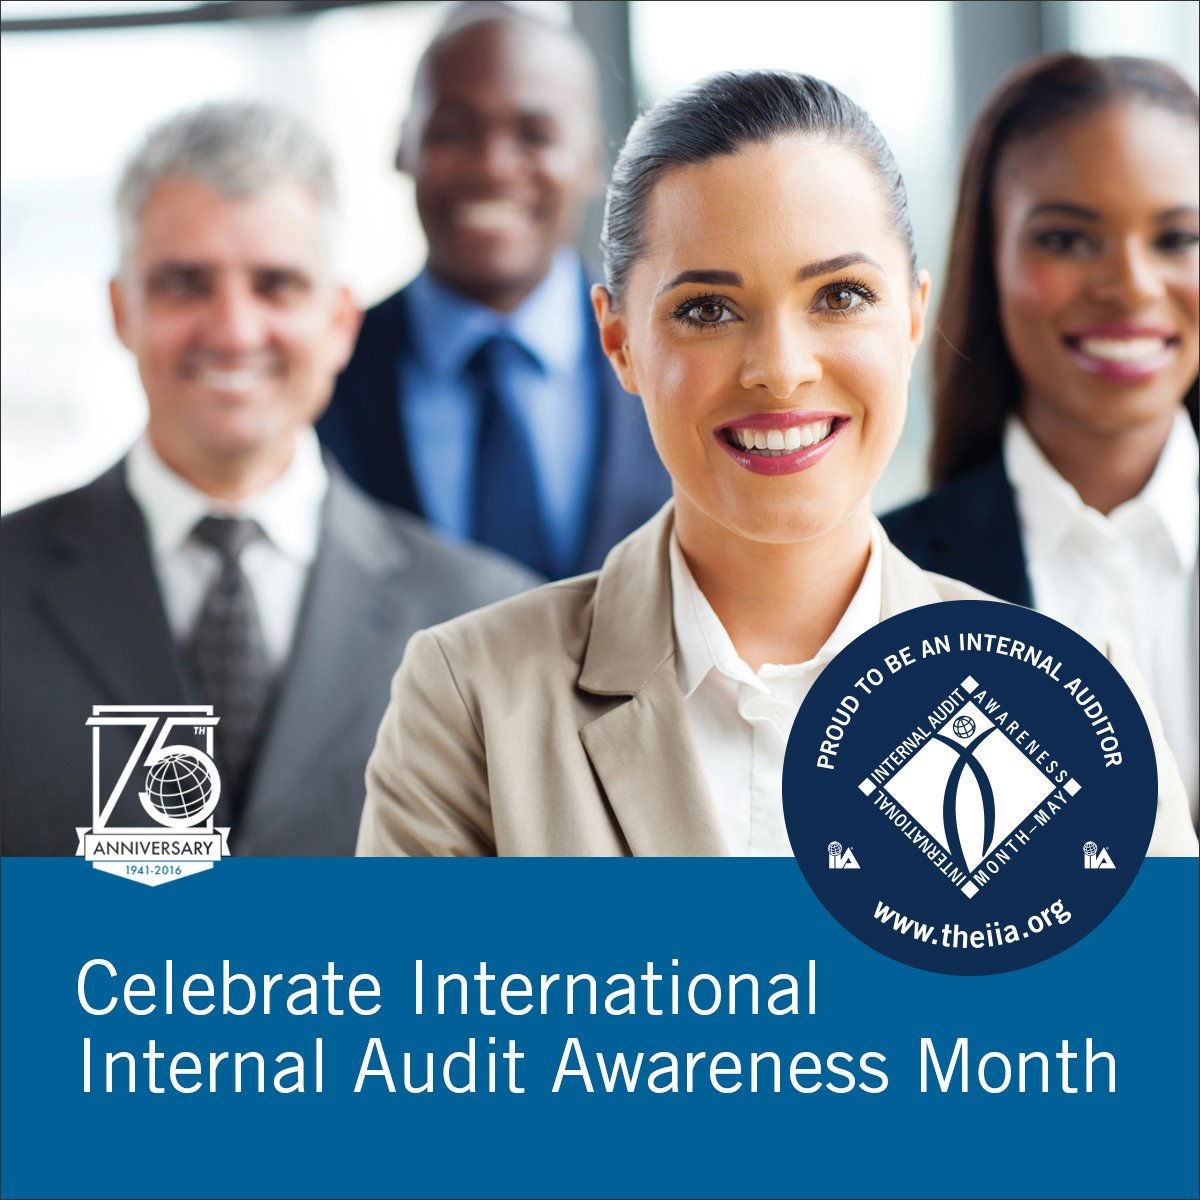 Promote. Drive Awareness. See Our Profession Grow. #IIAMay #internalaudit https://t.co/vYlm4NOUHh https://t.co/Xp8pZI7ih7